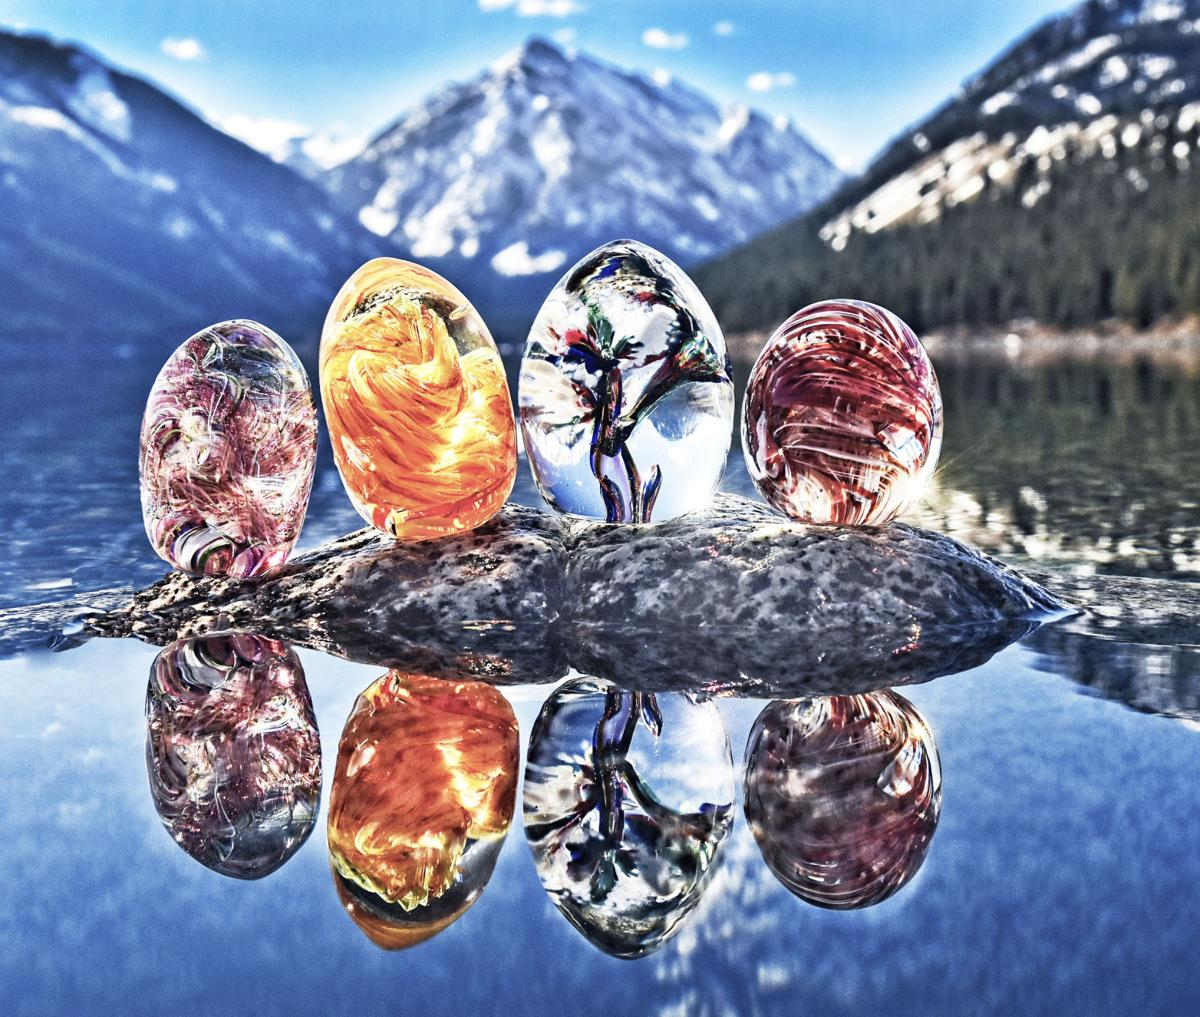 Glass eggs at lake